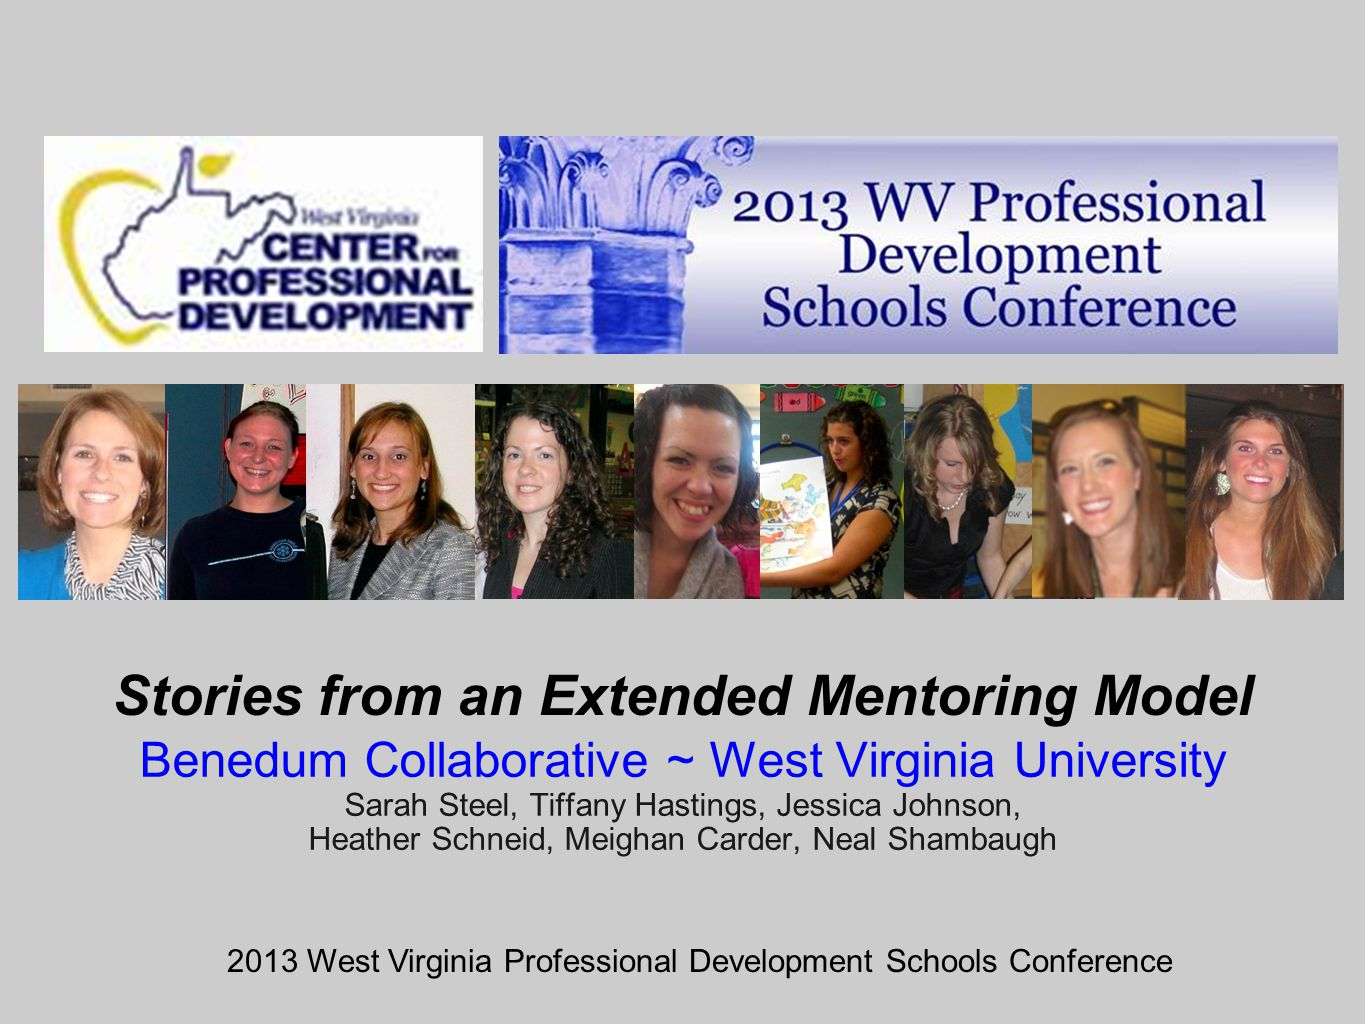 Stories from an Extended Mentoring Model Benedum Collaborative ~ West Virginia University Sarah Steel, Tiffany Hastings, Jessica Johnson, Heather Schneid, Meighan Carder, Neal Shambaugh 2013 West Virginia Professional Development Schools Conference